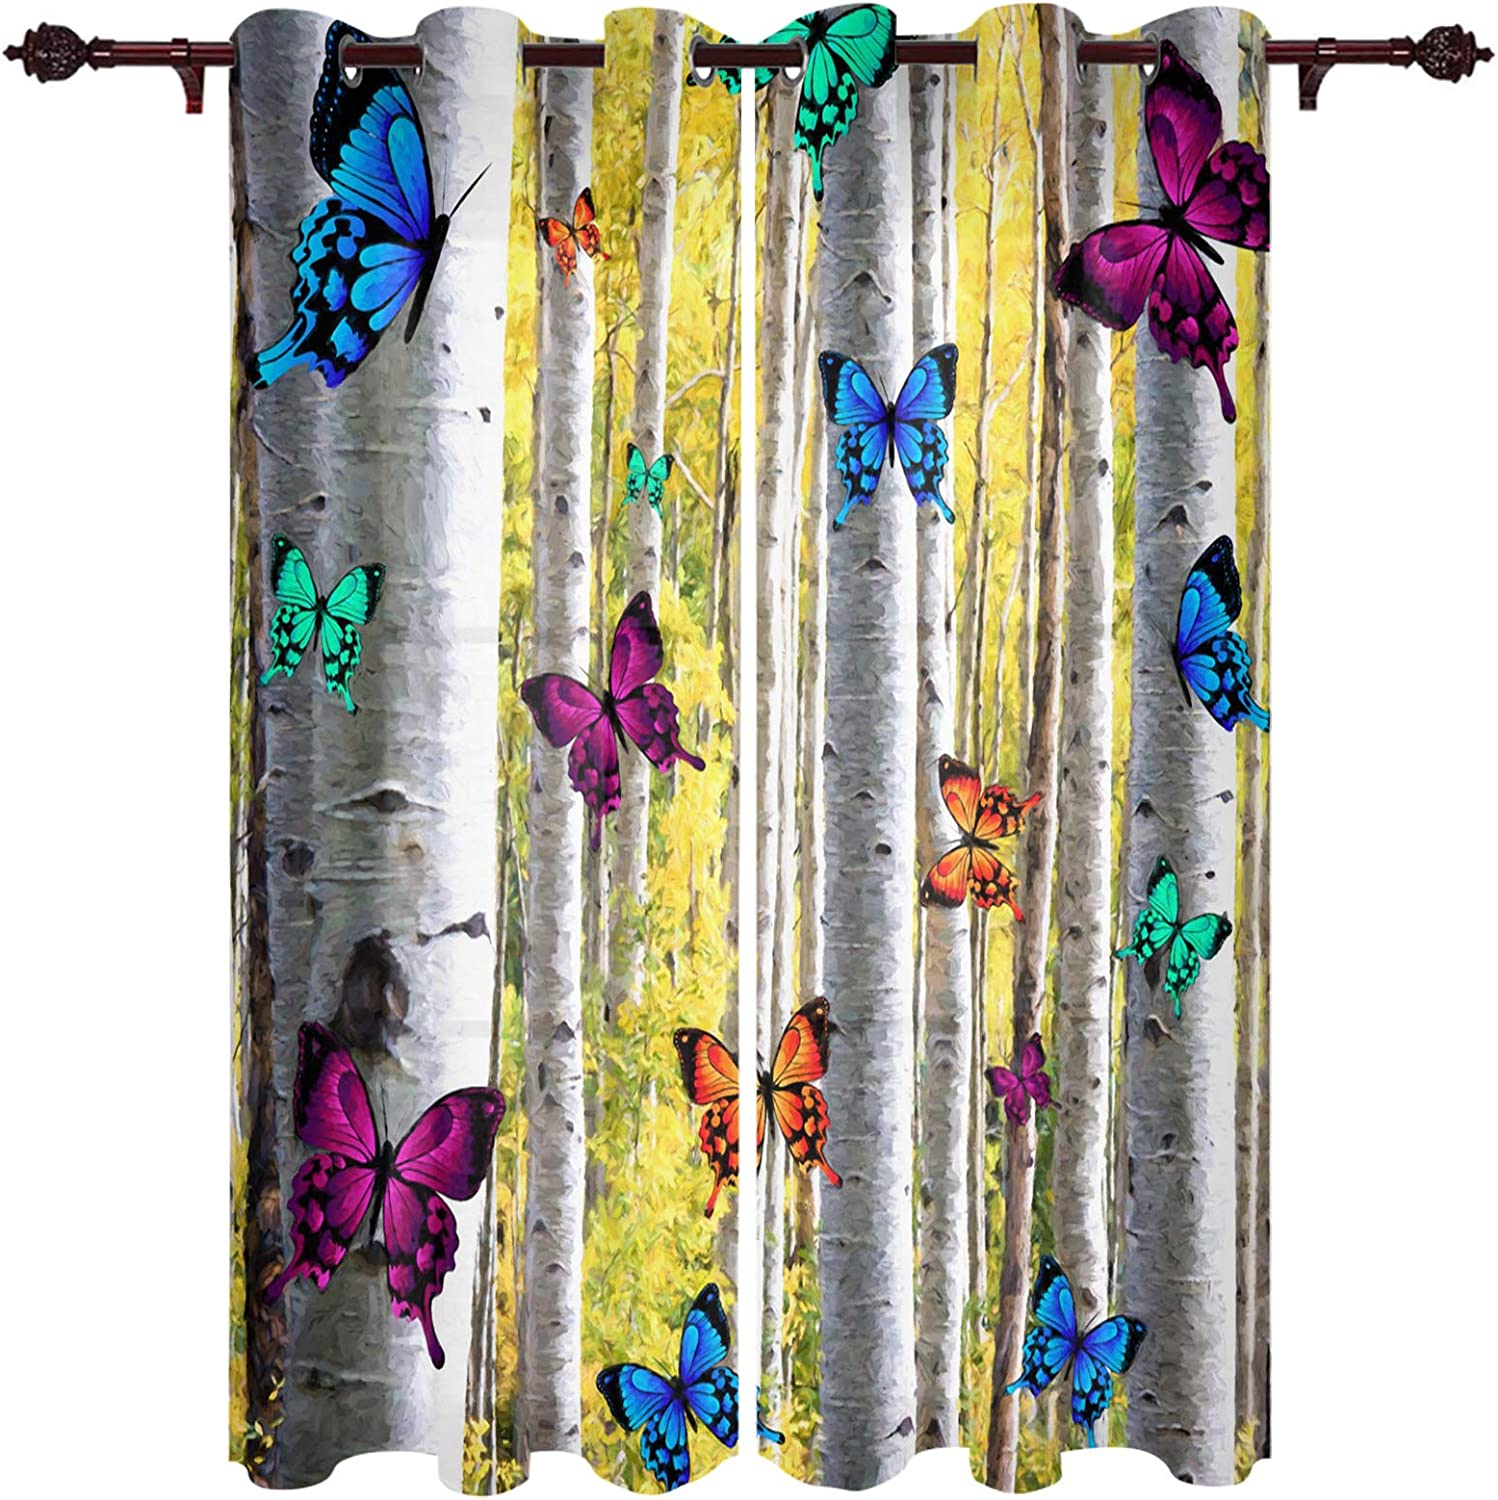 EZON-CH Super sale period limited Selling and selling Window Draperies Grommet Room Pane Curtain Living